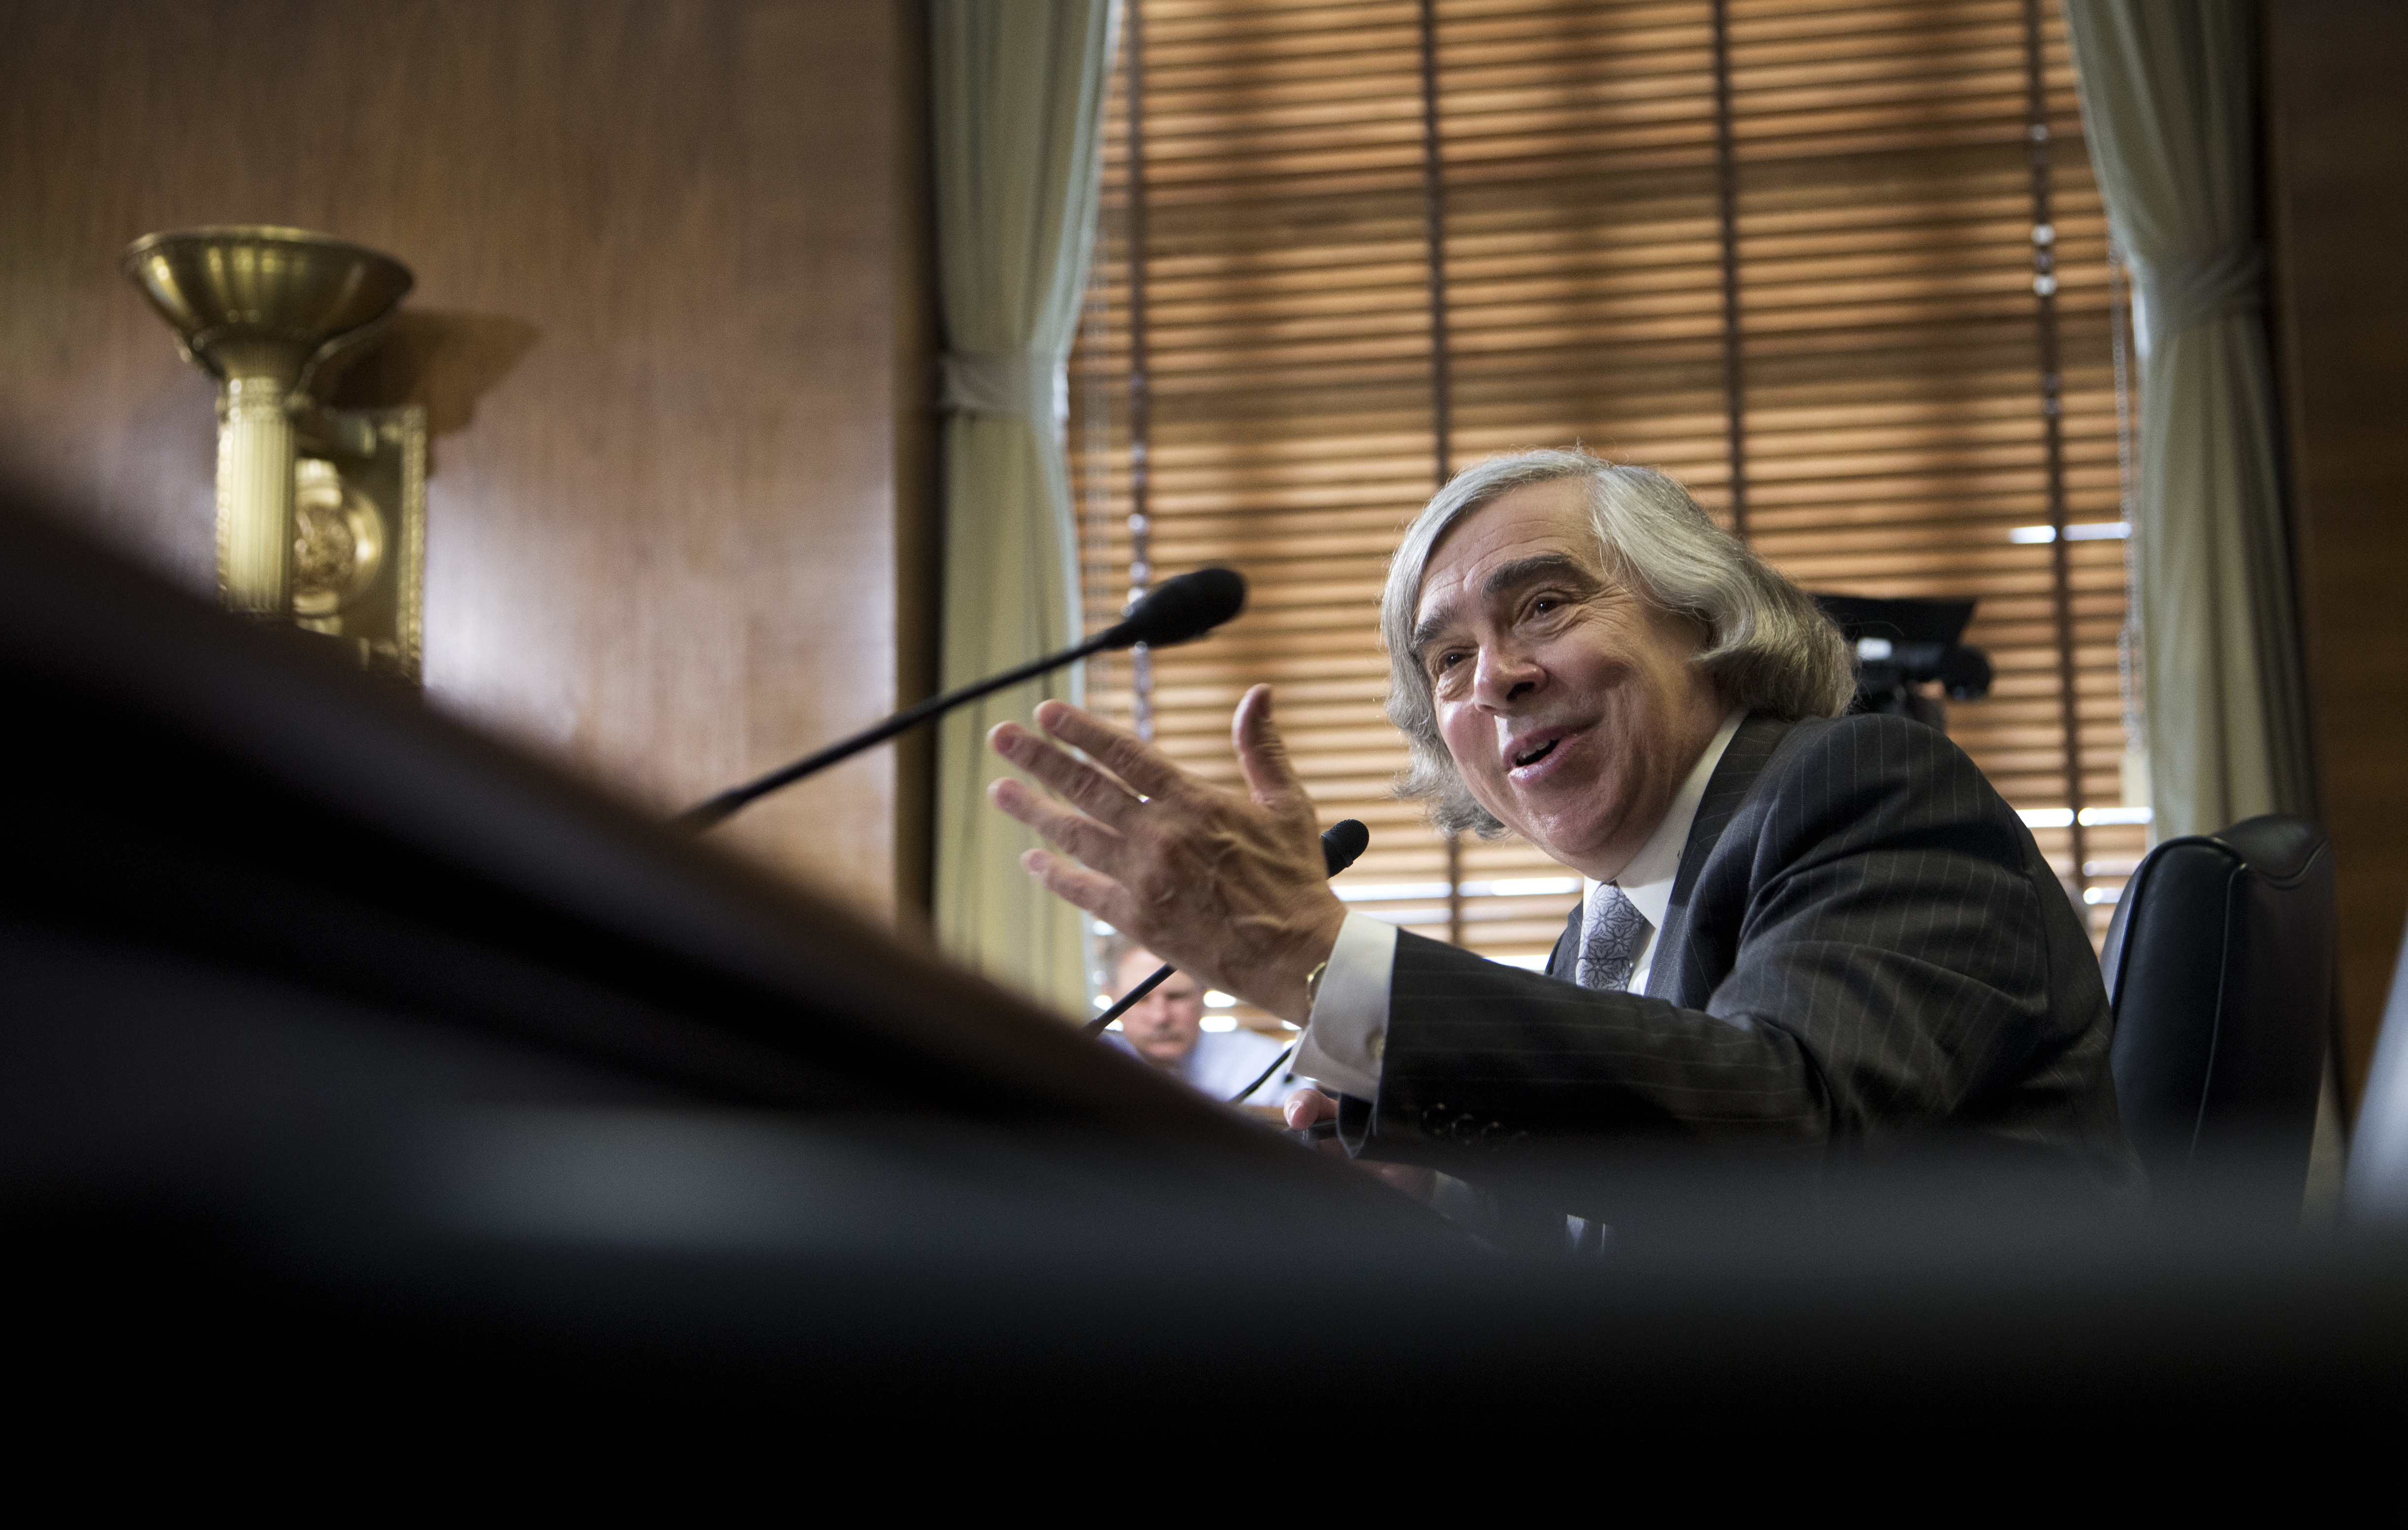 Ernest Moniz, Obama's energy secretary nominee, lauds fracking 'revolution'